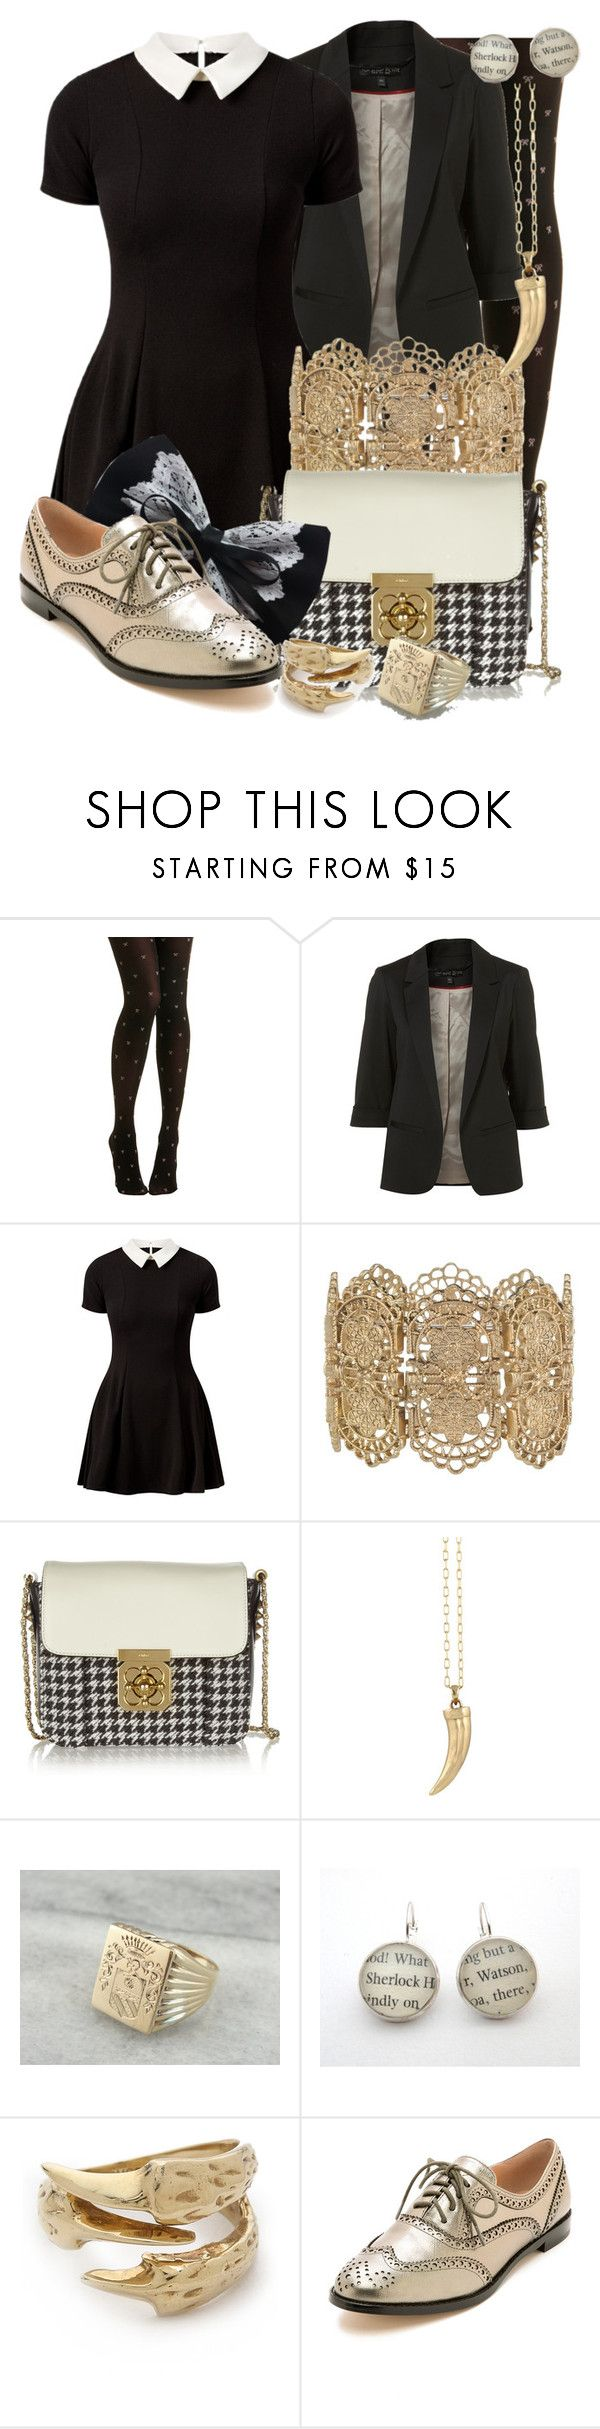 """""""ndfashionmonth day 1 